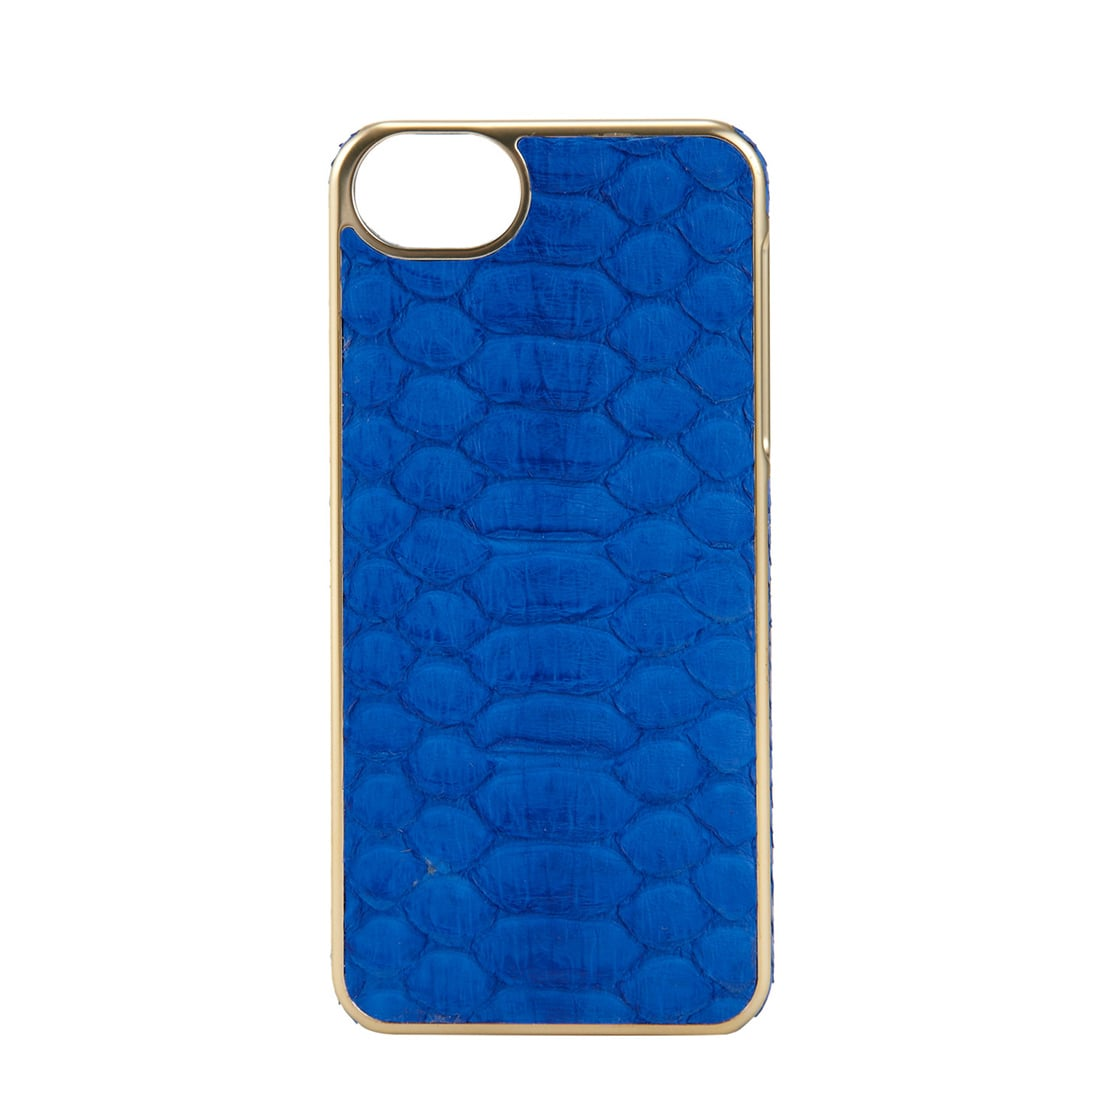 If exotics are more to your liking, we fell in love with this royal blue python case ($165) by Adopted the moment we saw it.